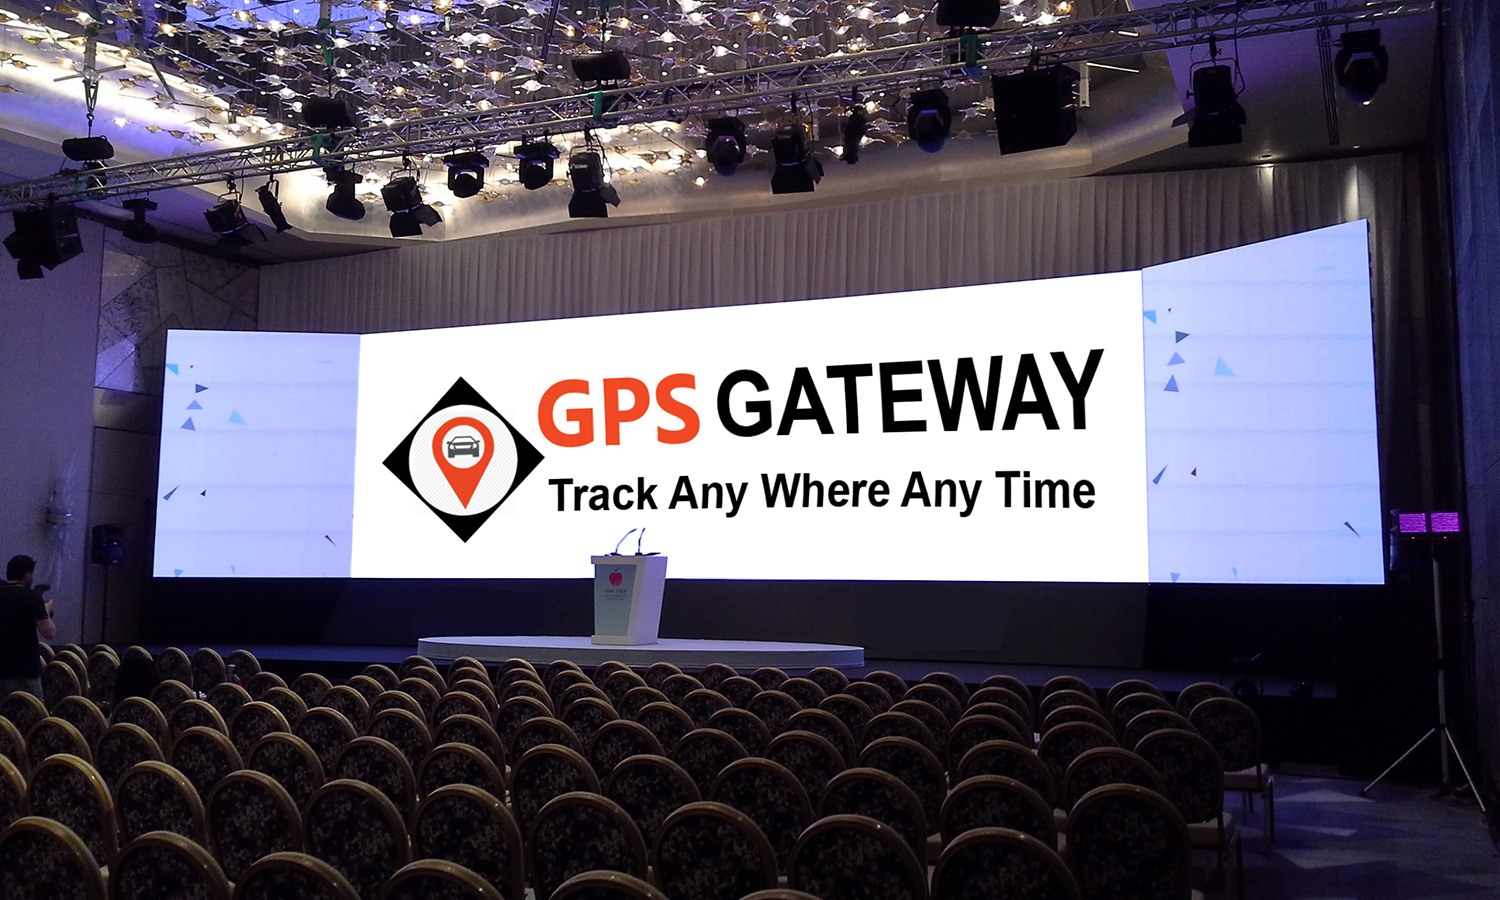 gps vehicle tracking system in Indore , gps tracking device in Indore,  car tracking device in Indore, GPS Tracking company Indore, GPS Tracker Indore, GPS tracking system Indore